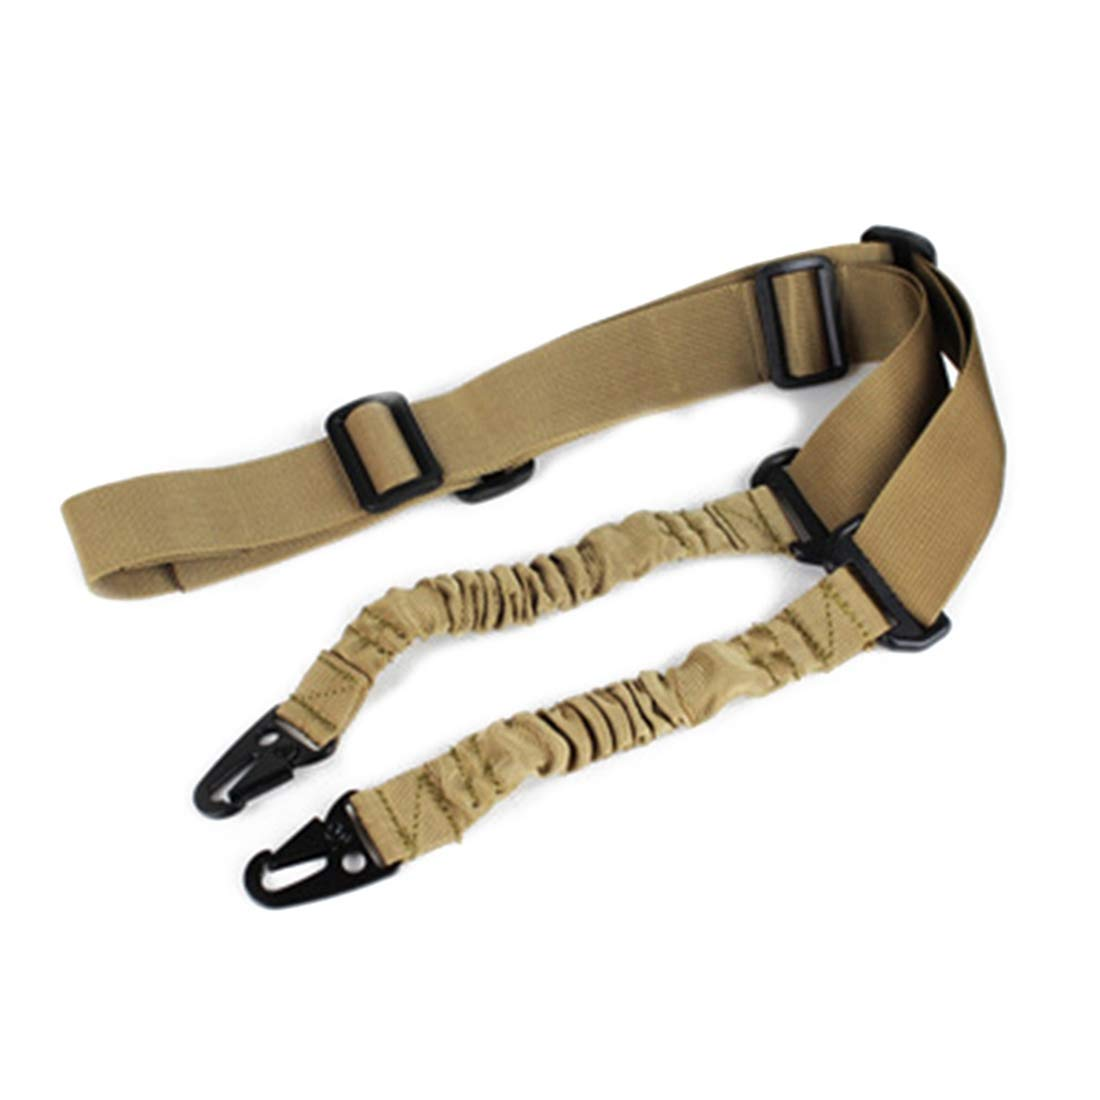 Oraunent Adjustable Neck Strap Sling Tactical Two Point Bungee Sling for SLR Camera Outdoor Green